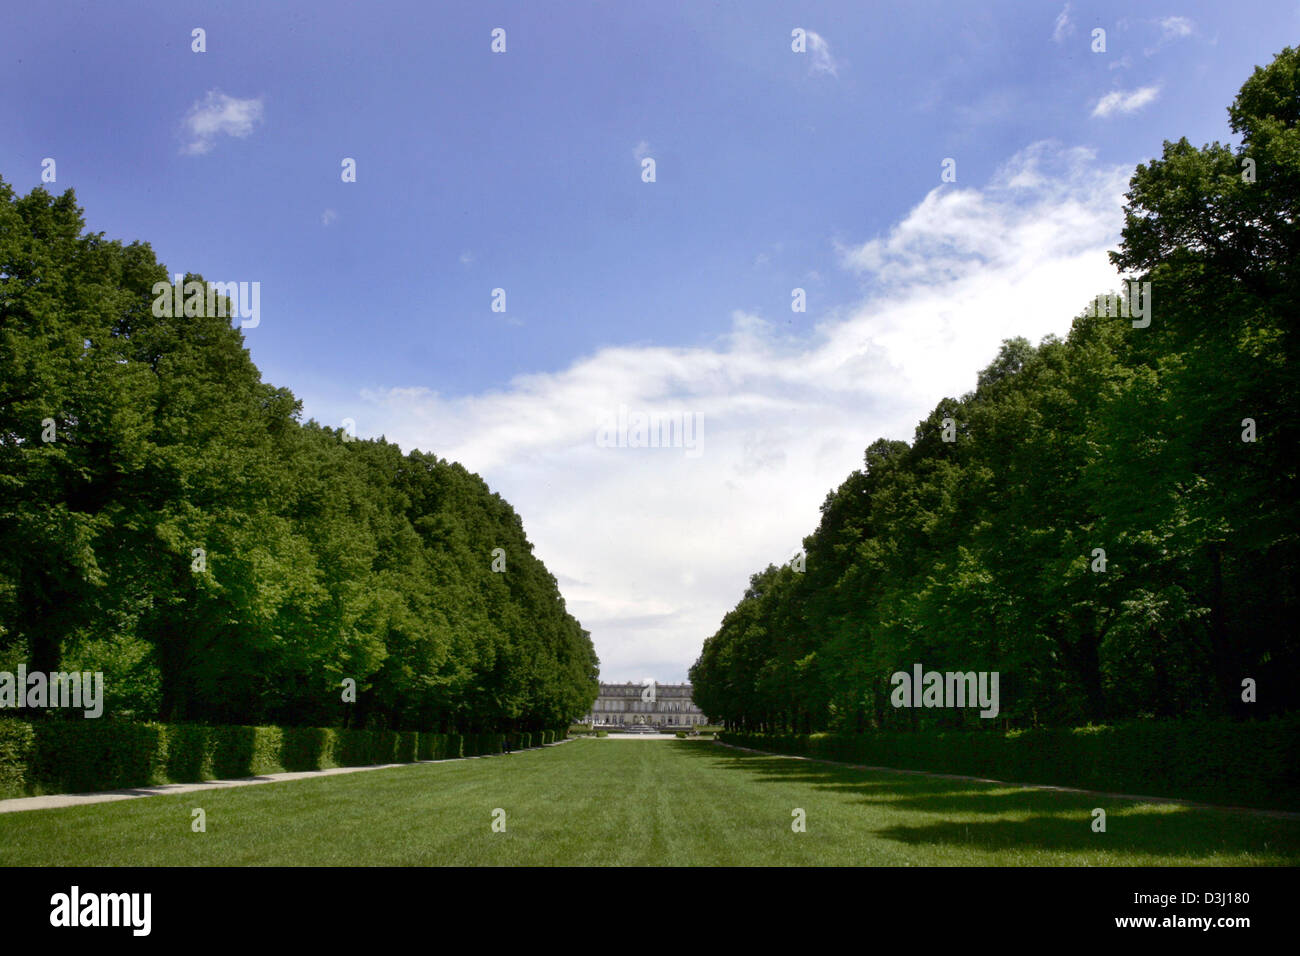 (dpa) - View on the castle Herrenchiemsee on the Herreninsel island at the Chiemsee lake. Germany, 9 June 2005. - Stock Image